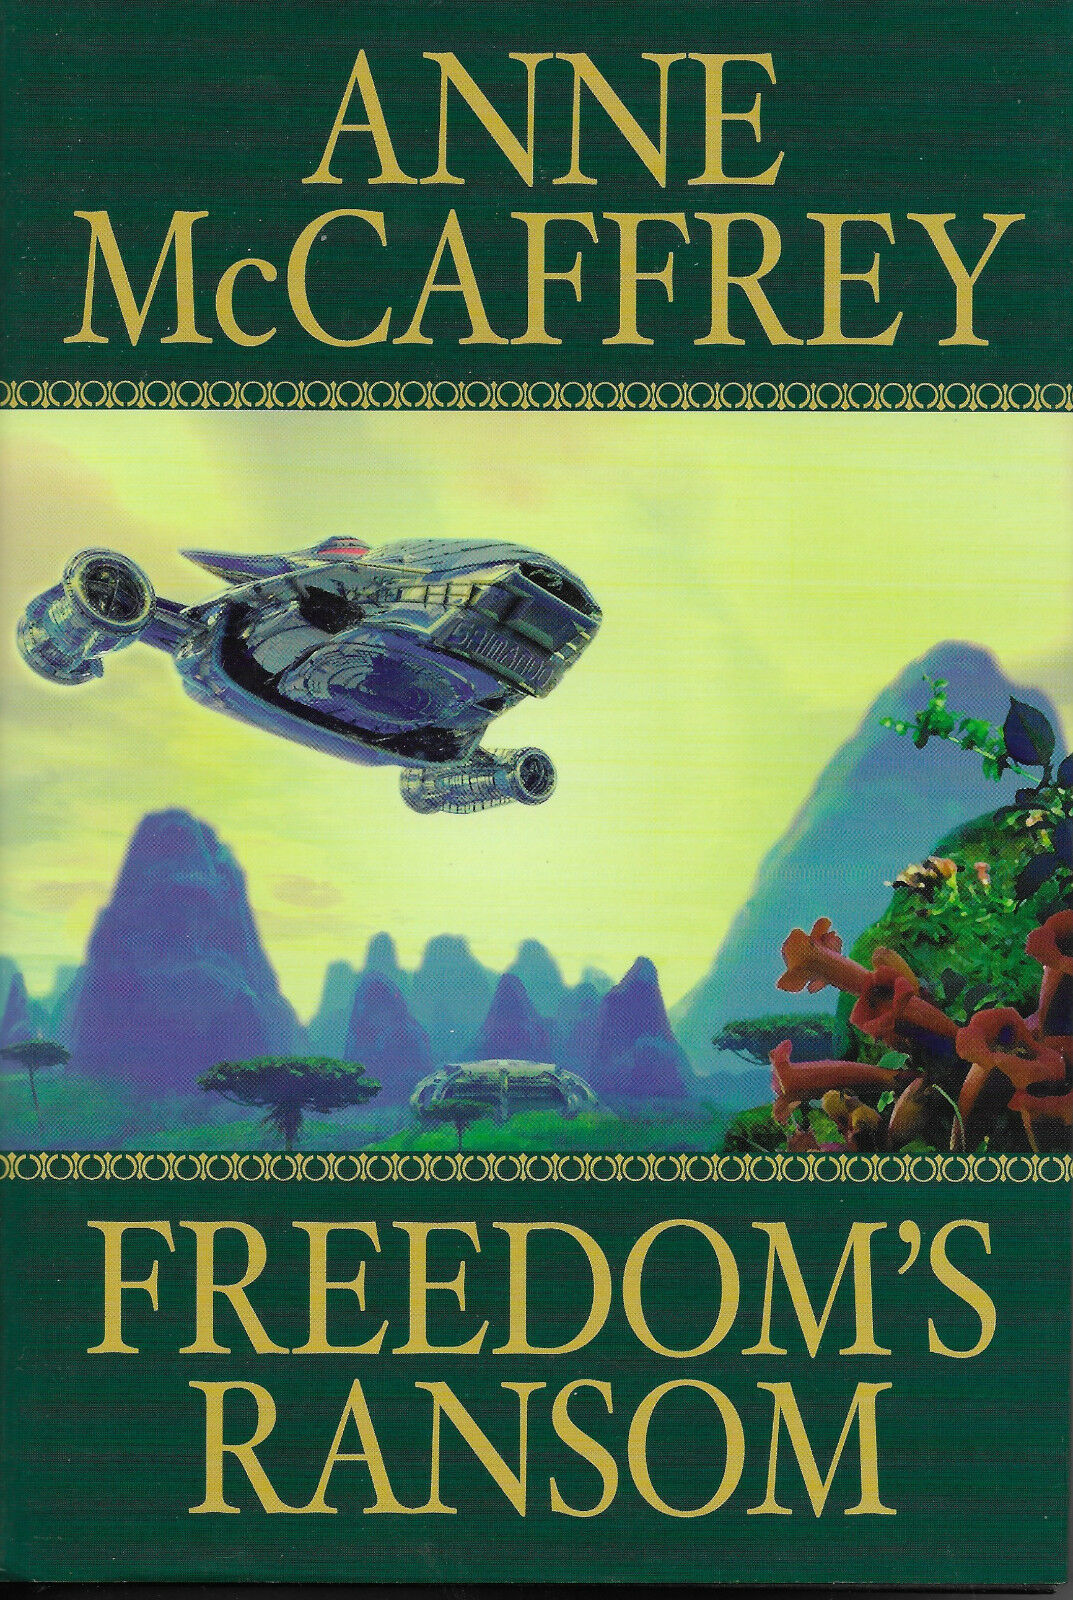 Catteni Sequence: Freedom's Ransom Vol. 4 by Anne McCaffrey (2002,  Hardcover)   eBay